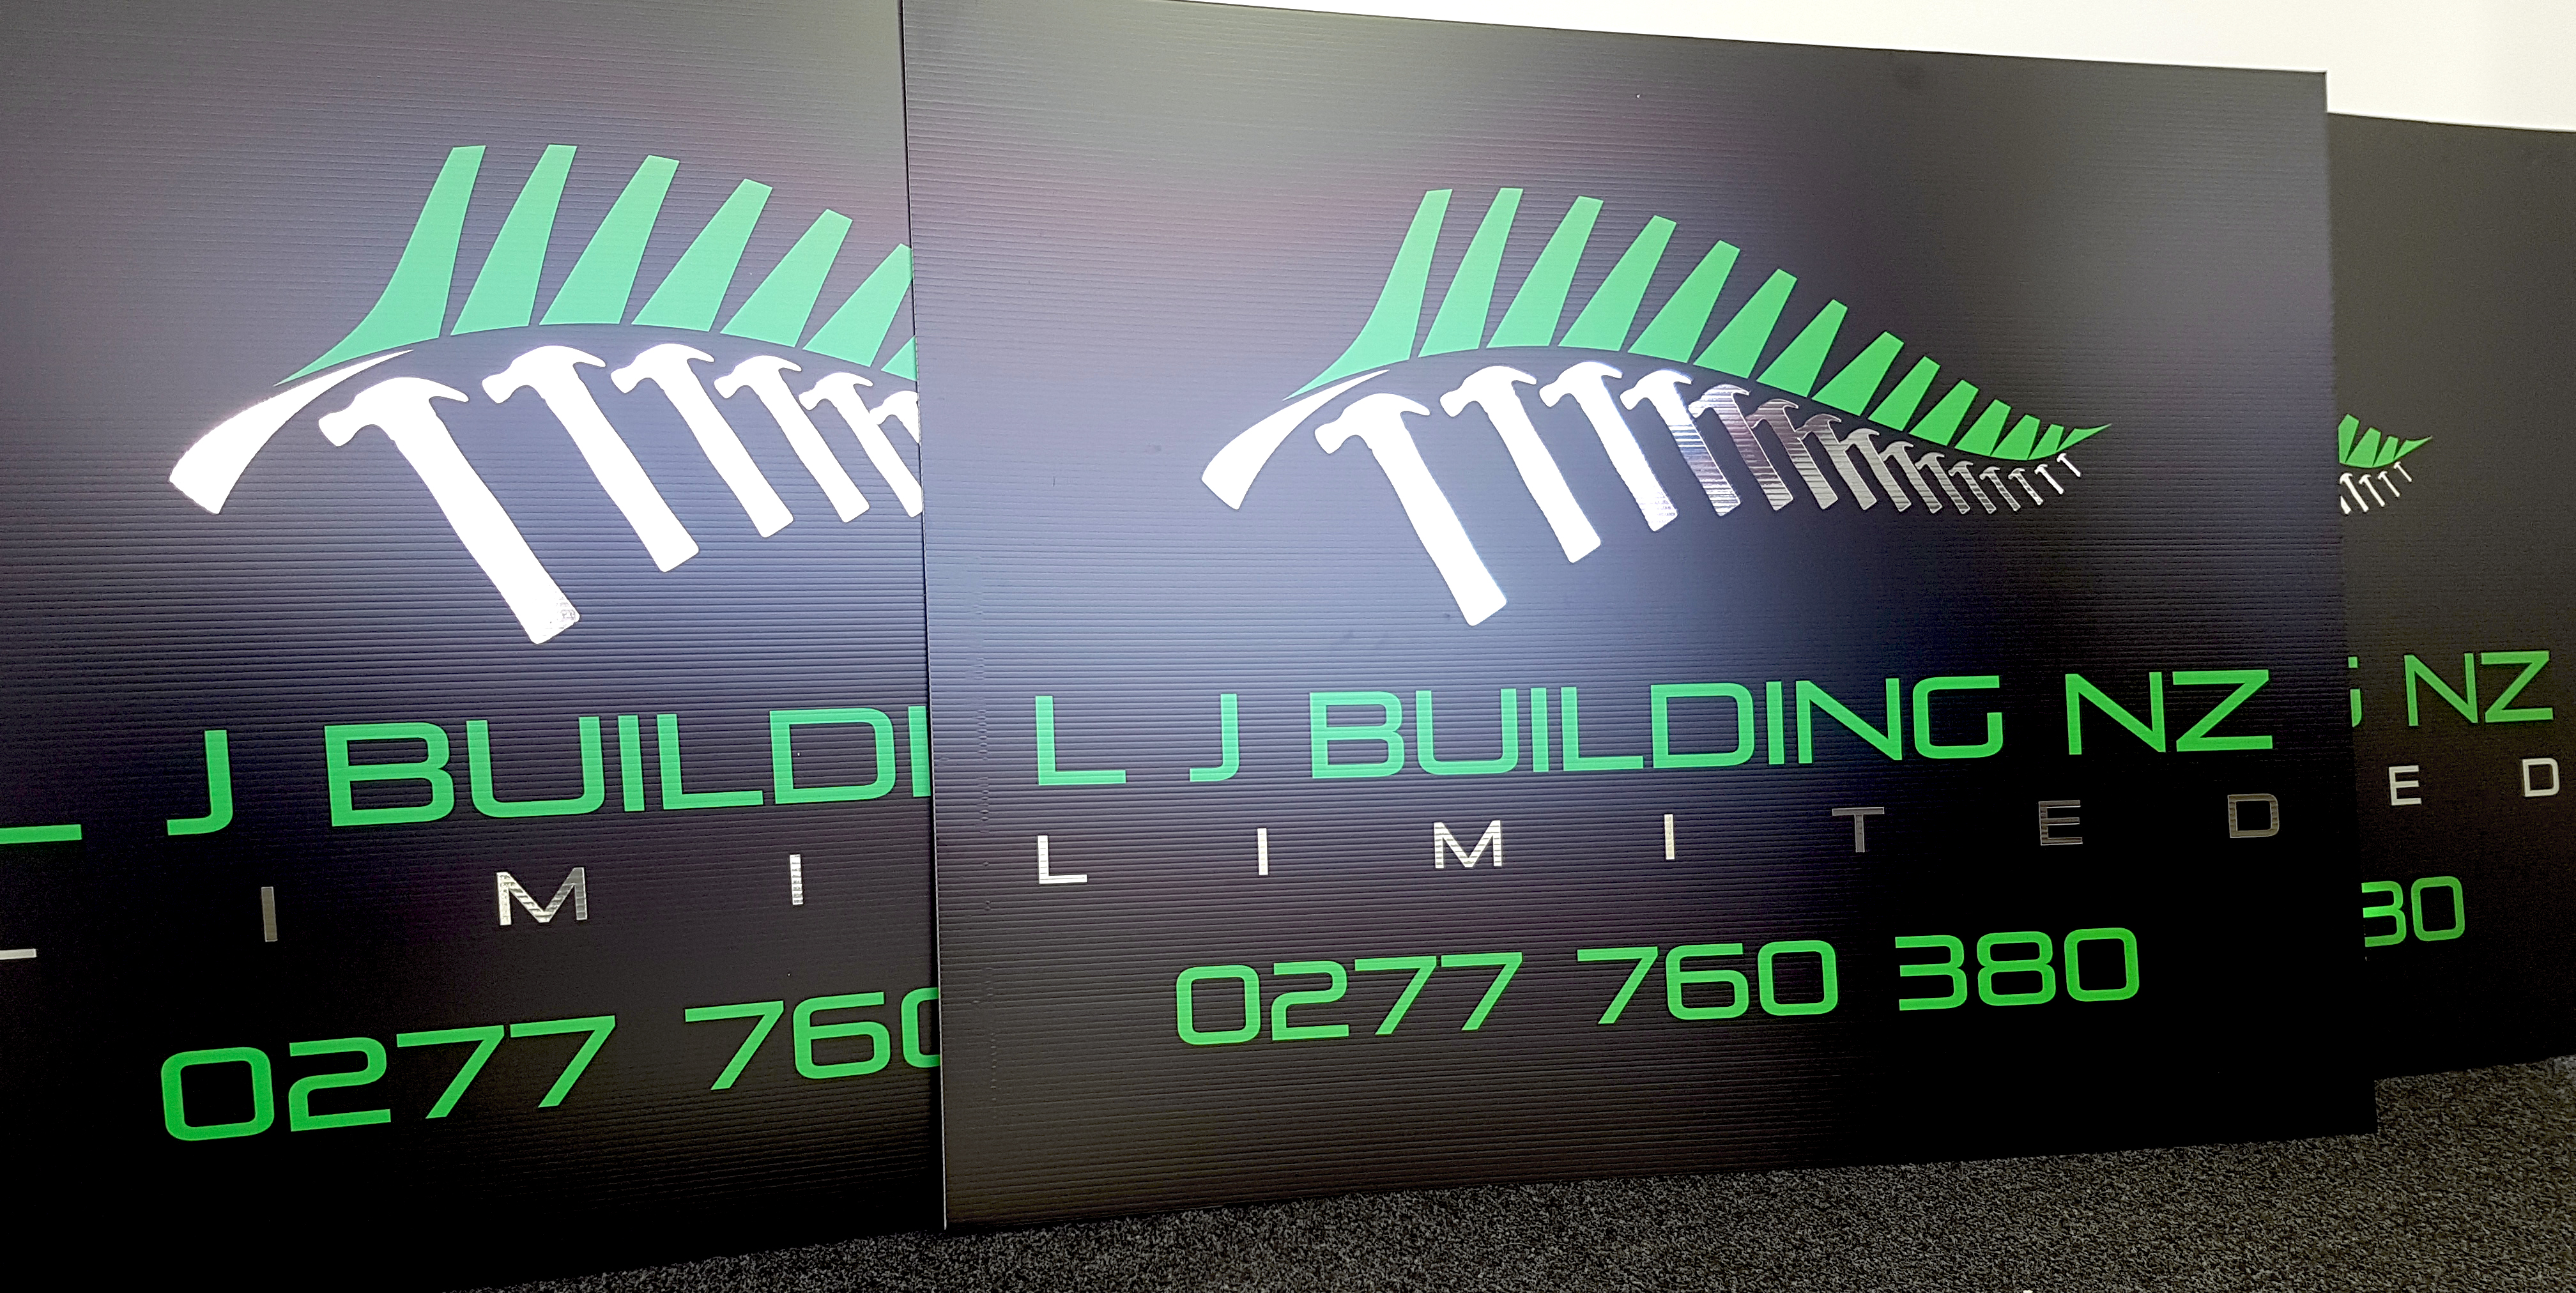 LJ Building NZ corflute sign